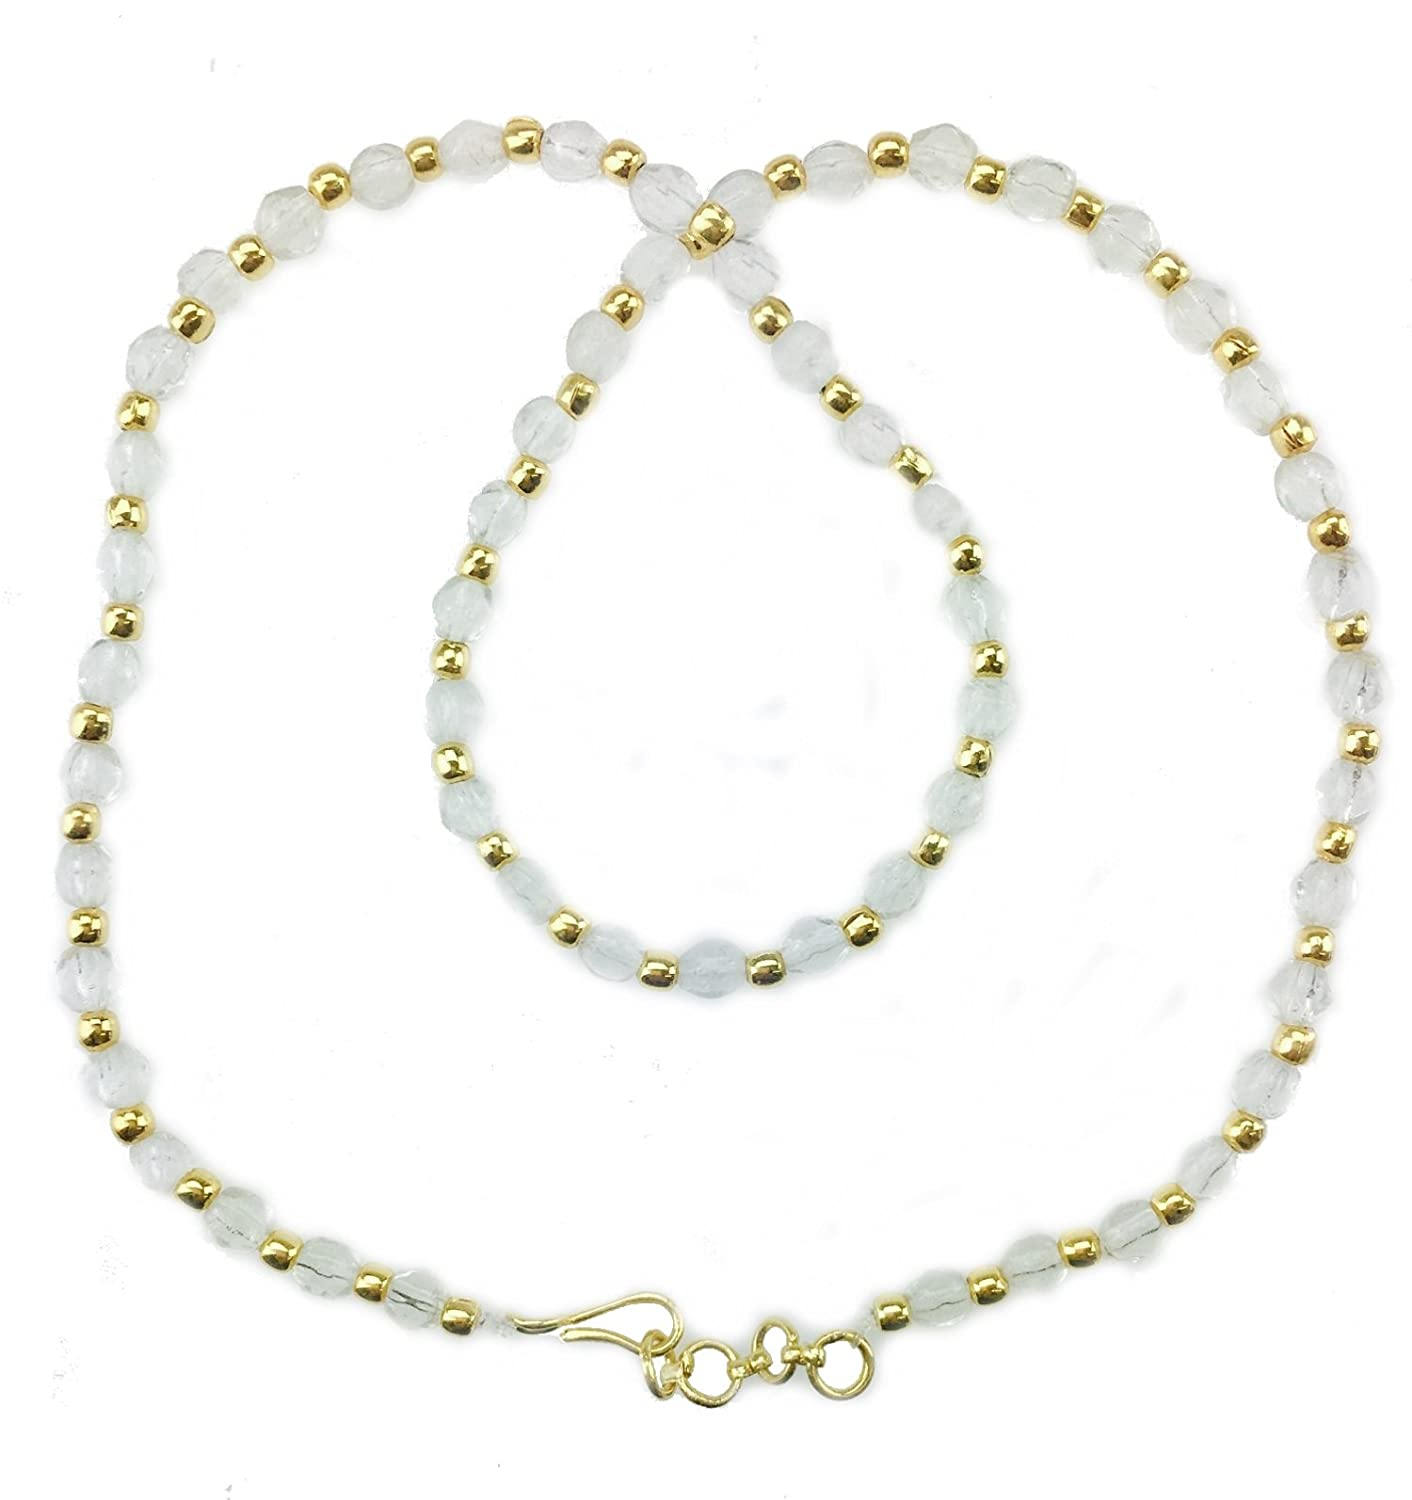 9279cb3a25b White & Gold/Silver Crystal Bead Necklace Plastic Chain Jewellery ...